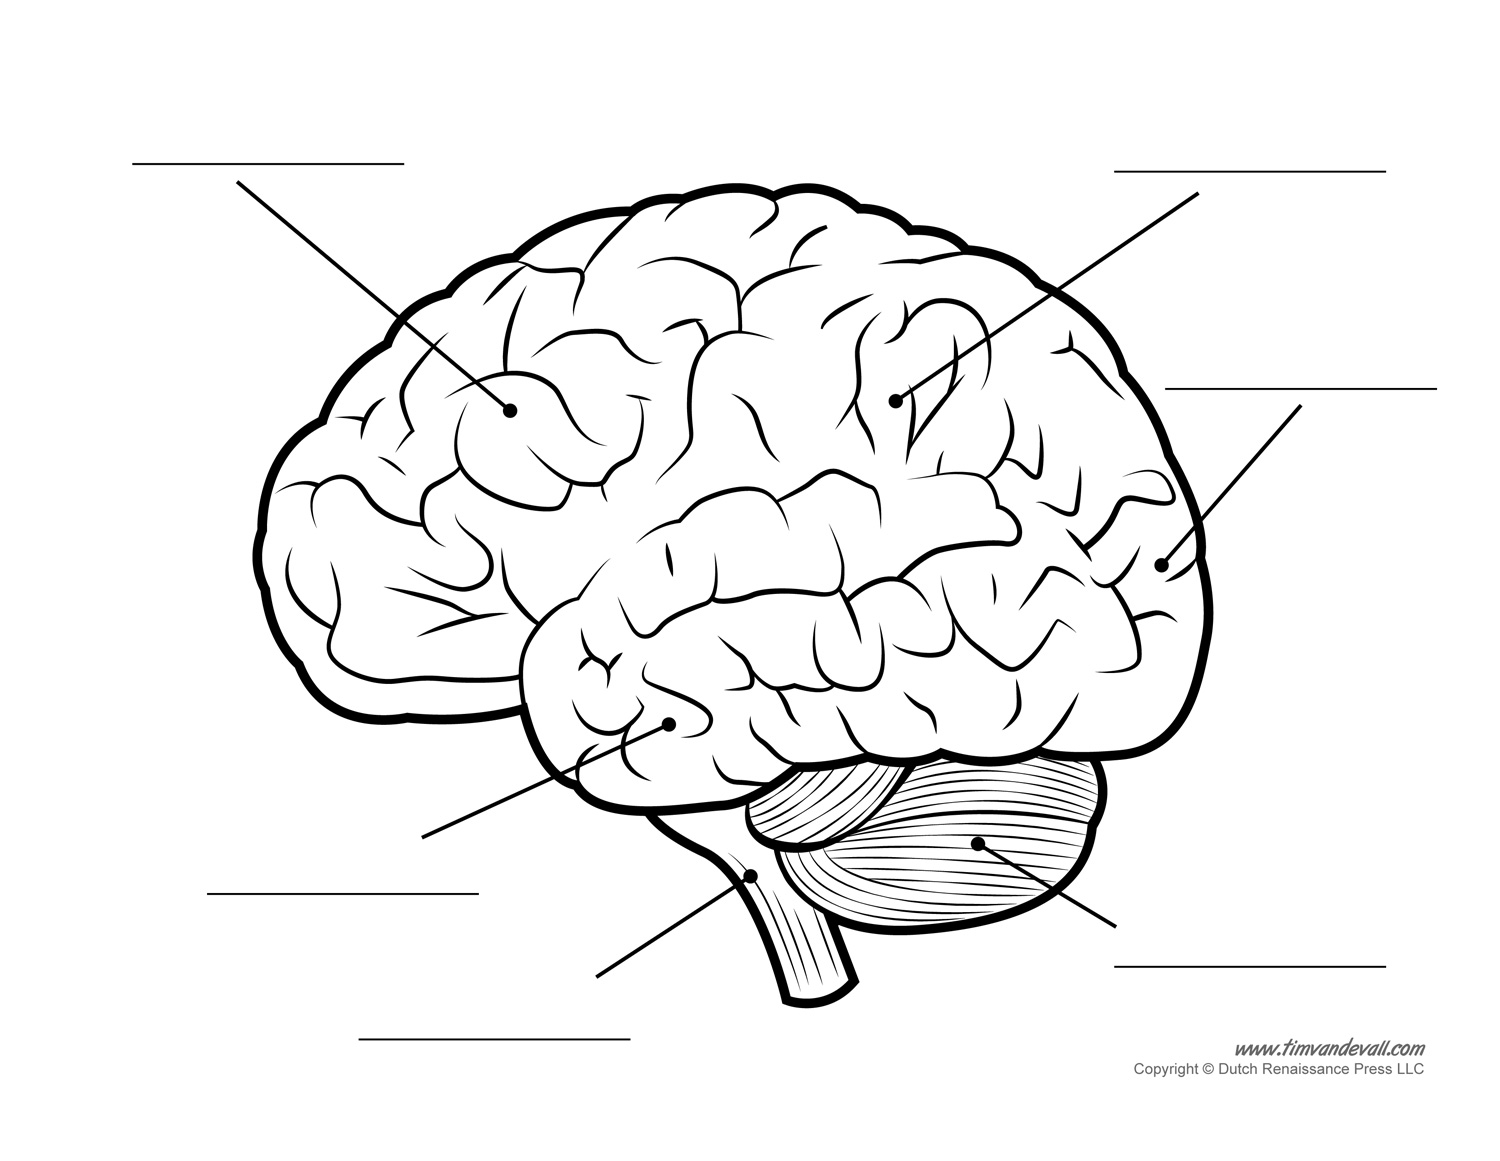 brain diagram without labels 2002 jetta fuse free printable blank download clip art on the human jpg